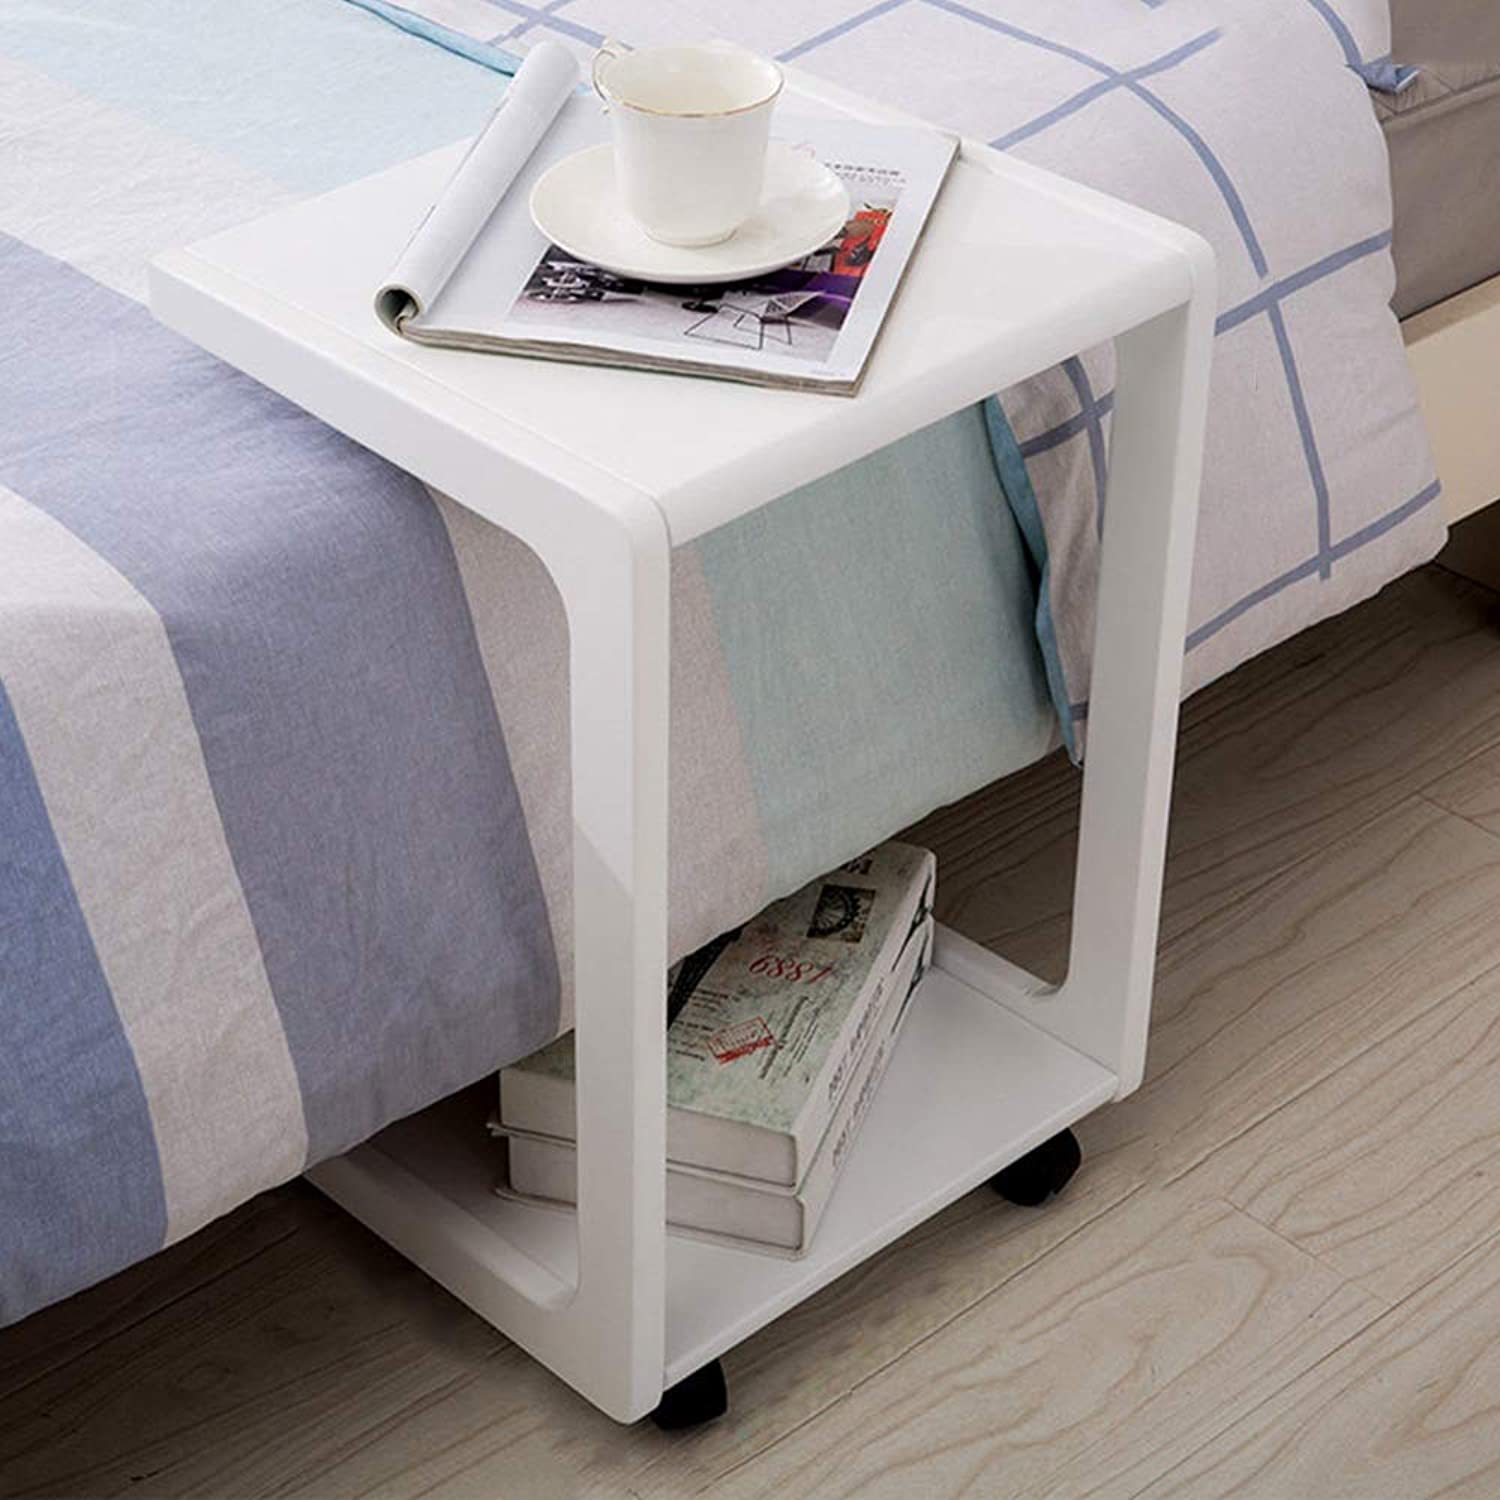 LJHA bianzhuo Side Table, Solid Wood Movable Practical Household Side Table Multifunction Reinforce Sofa Side Table Simple Bedroom Bedside Computer Desk Side Table (color   White)